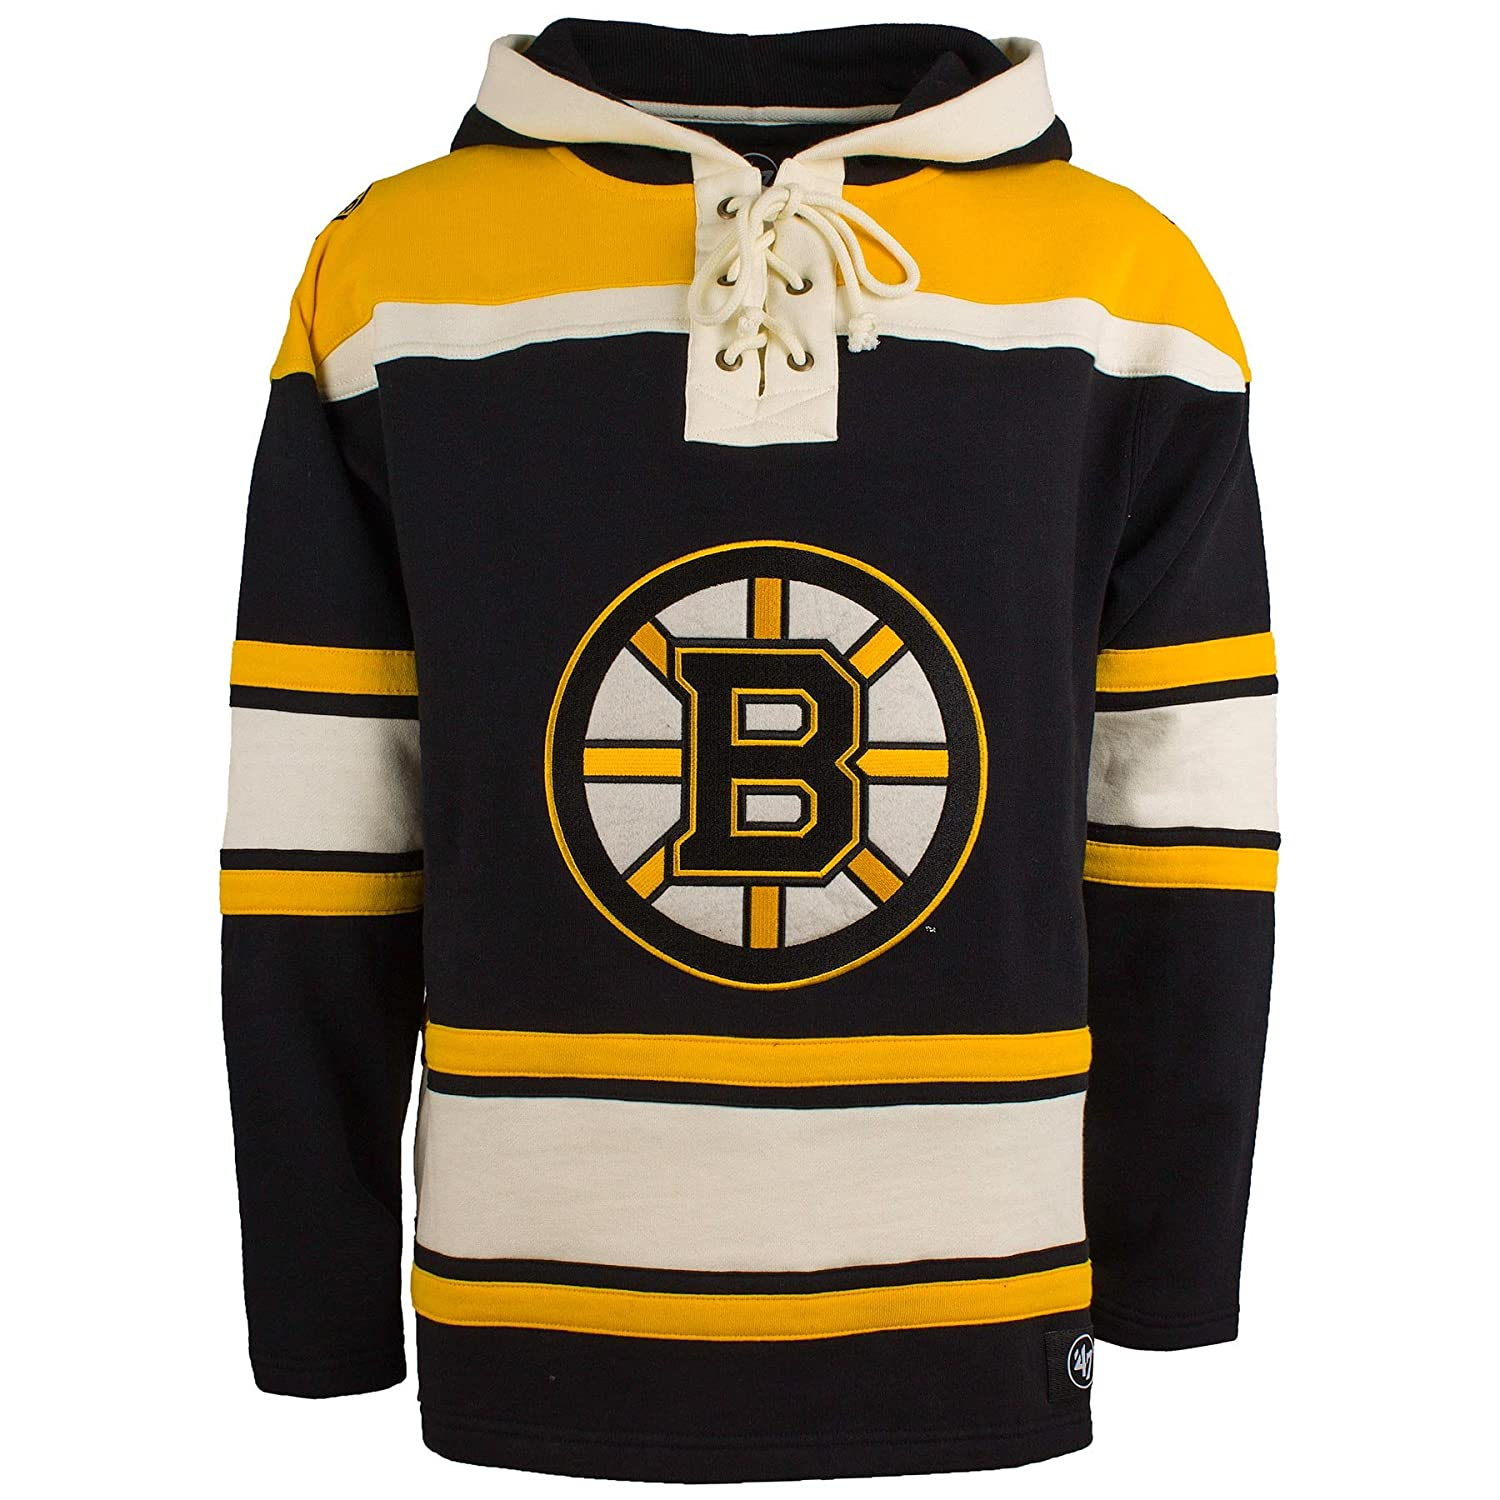 Amazon.com    47 Boston Bruins NHL Heavyweight Jersey Lacer Hoodie   Sports    Outdoors 21834baf2